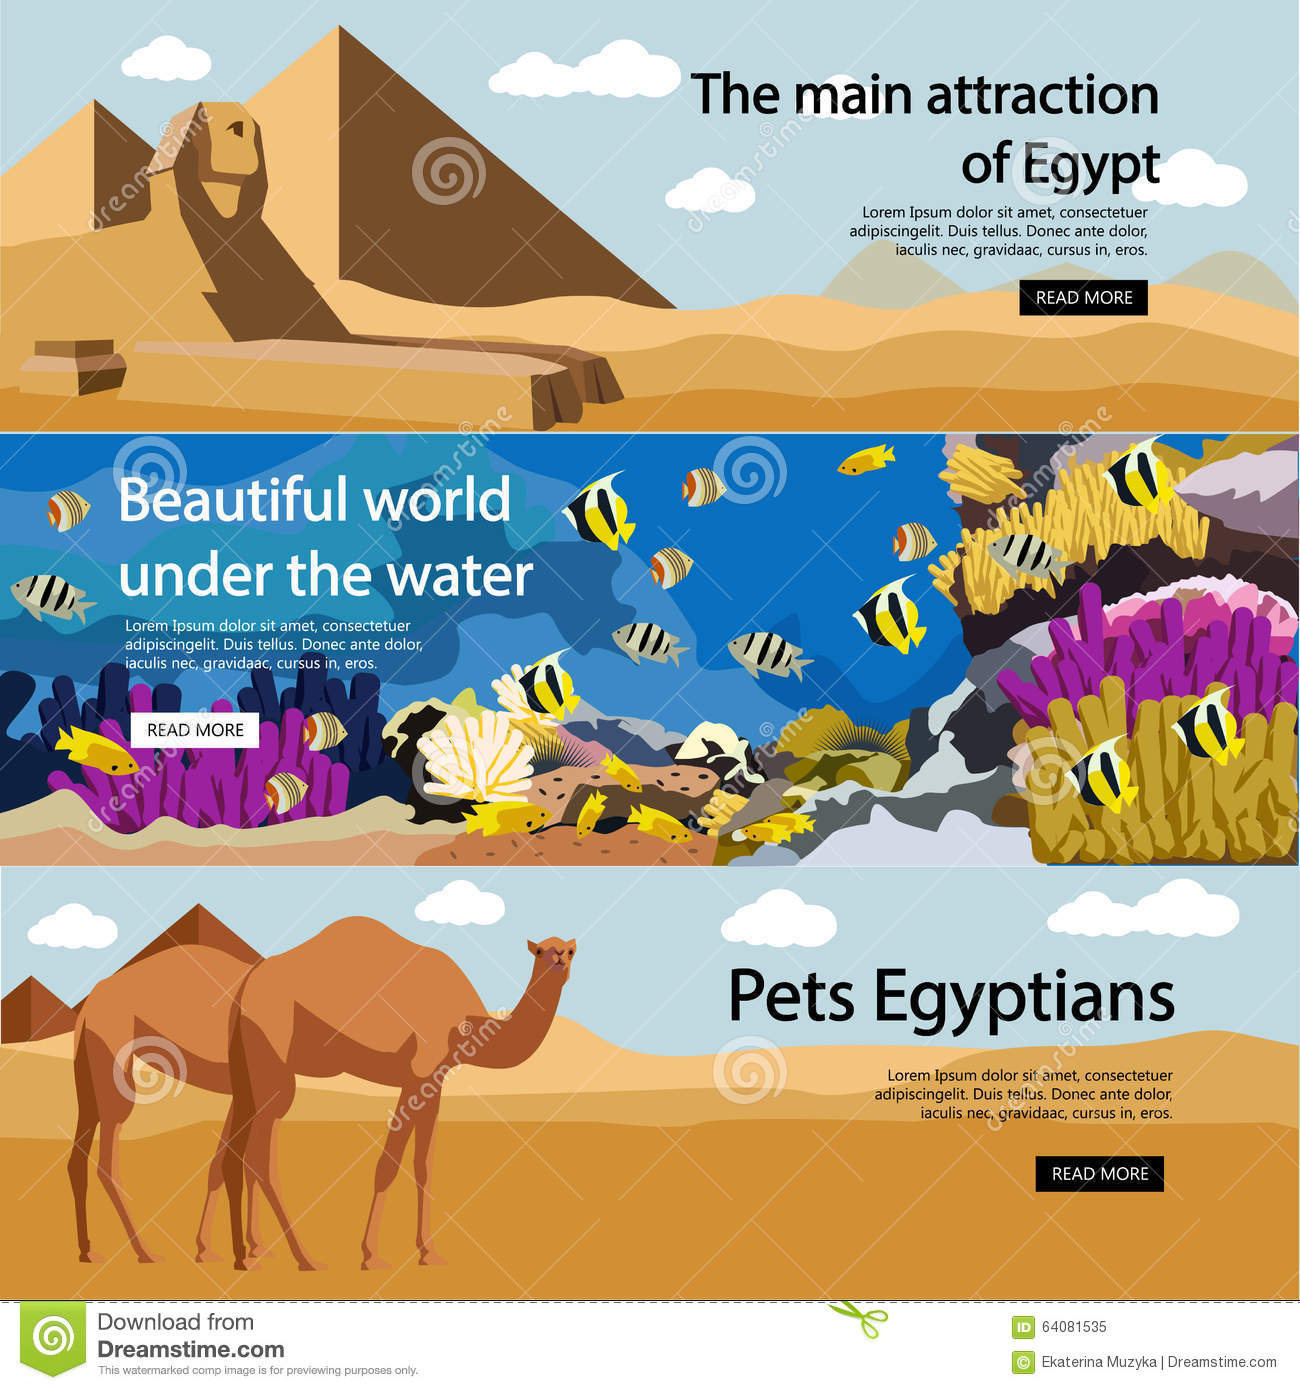 cultural tourism in egypt an analysis Egypt enjoys various fields of tourism attraction, the most important are archeological or cultural tourism as one of the oldest types of tourism in egypt, where the landmarks of the ancient .